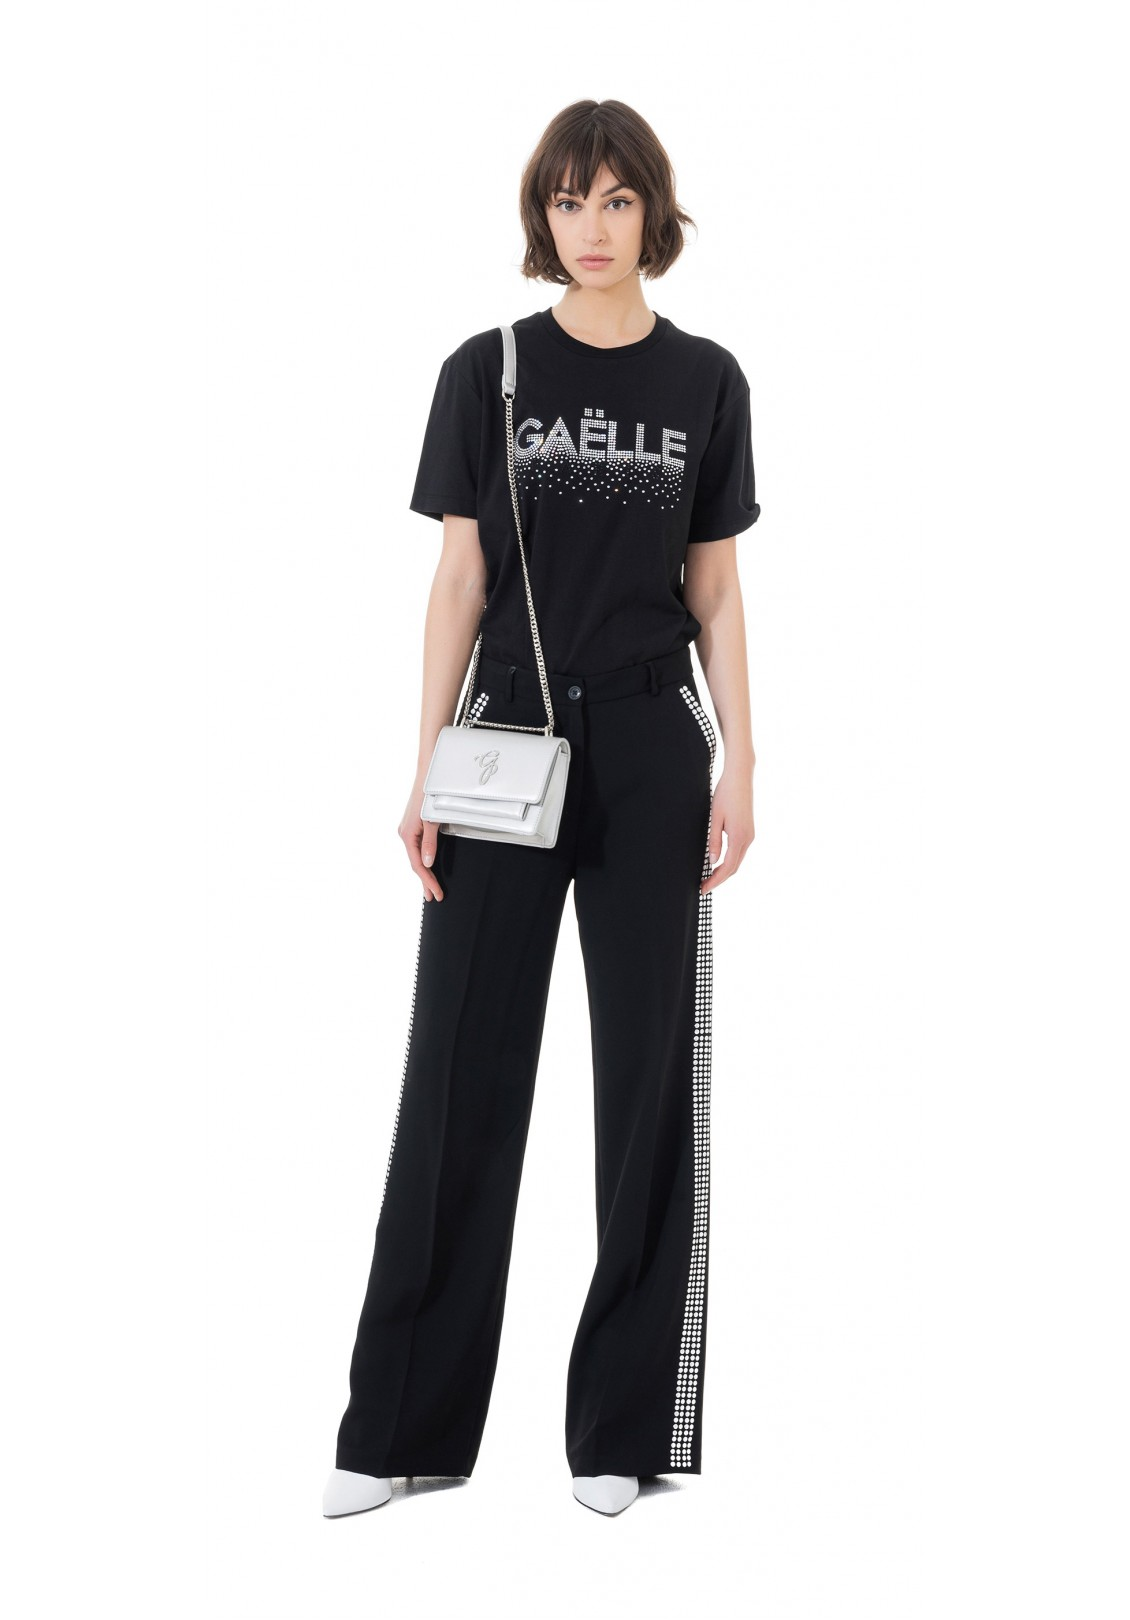 TROUSER - GBD5421 - GAELLE PARIS